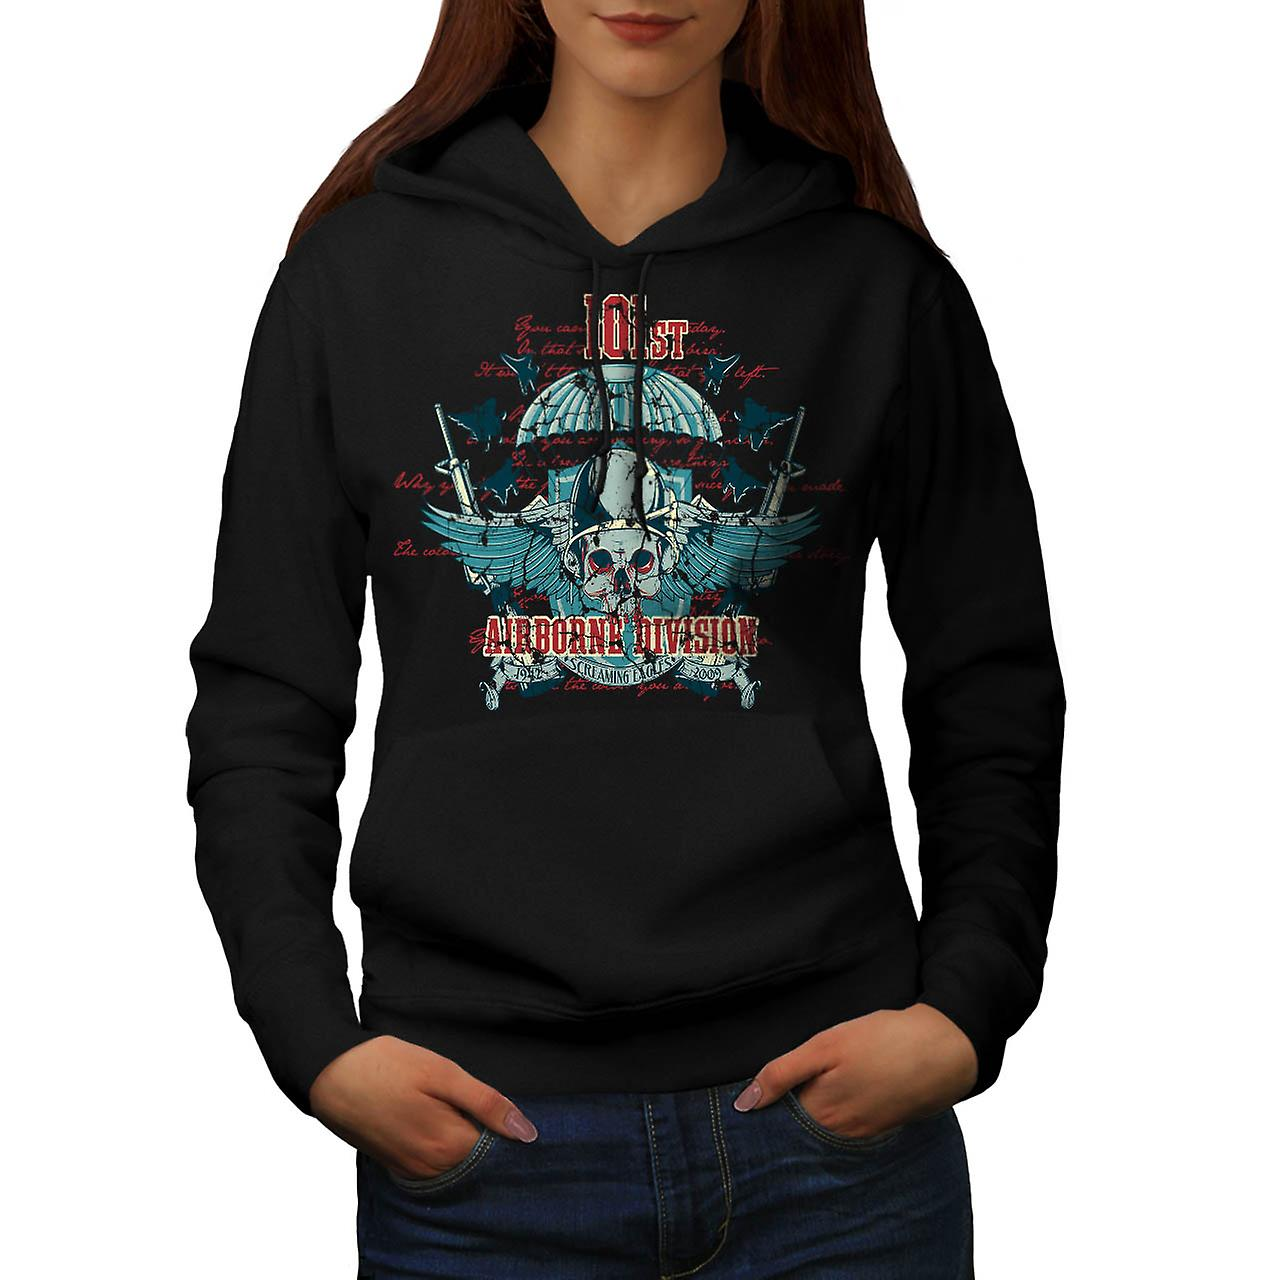 Airborne Division Fly War Flight Women Black Hoodie | Wellcoda